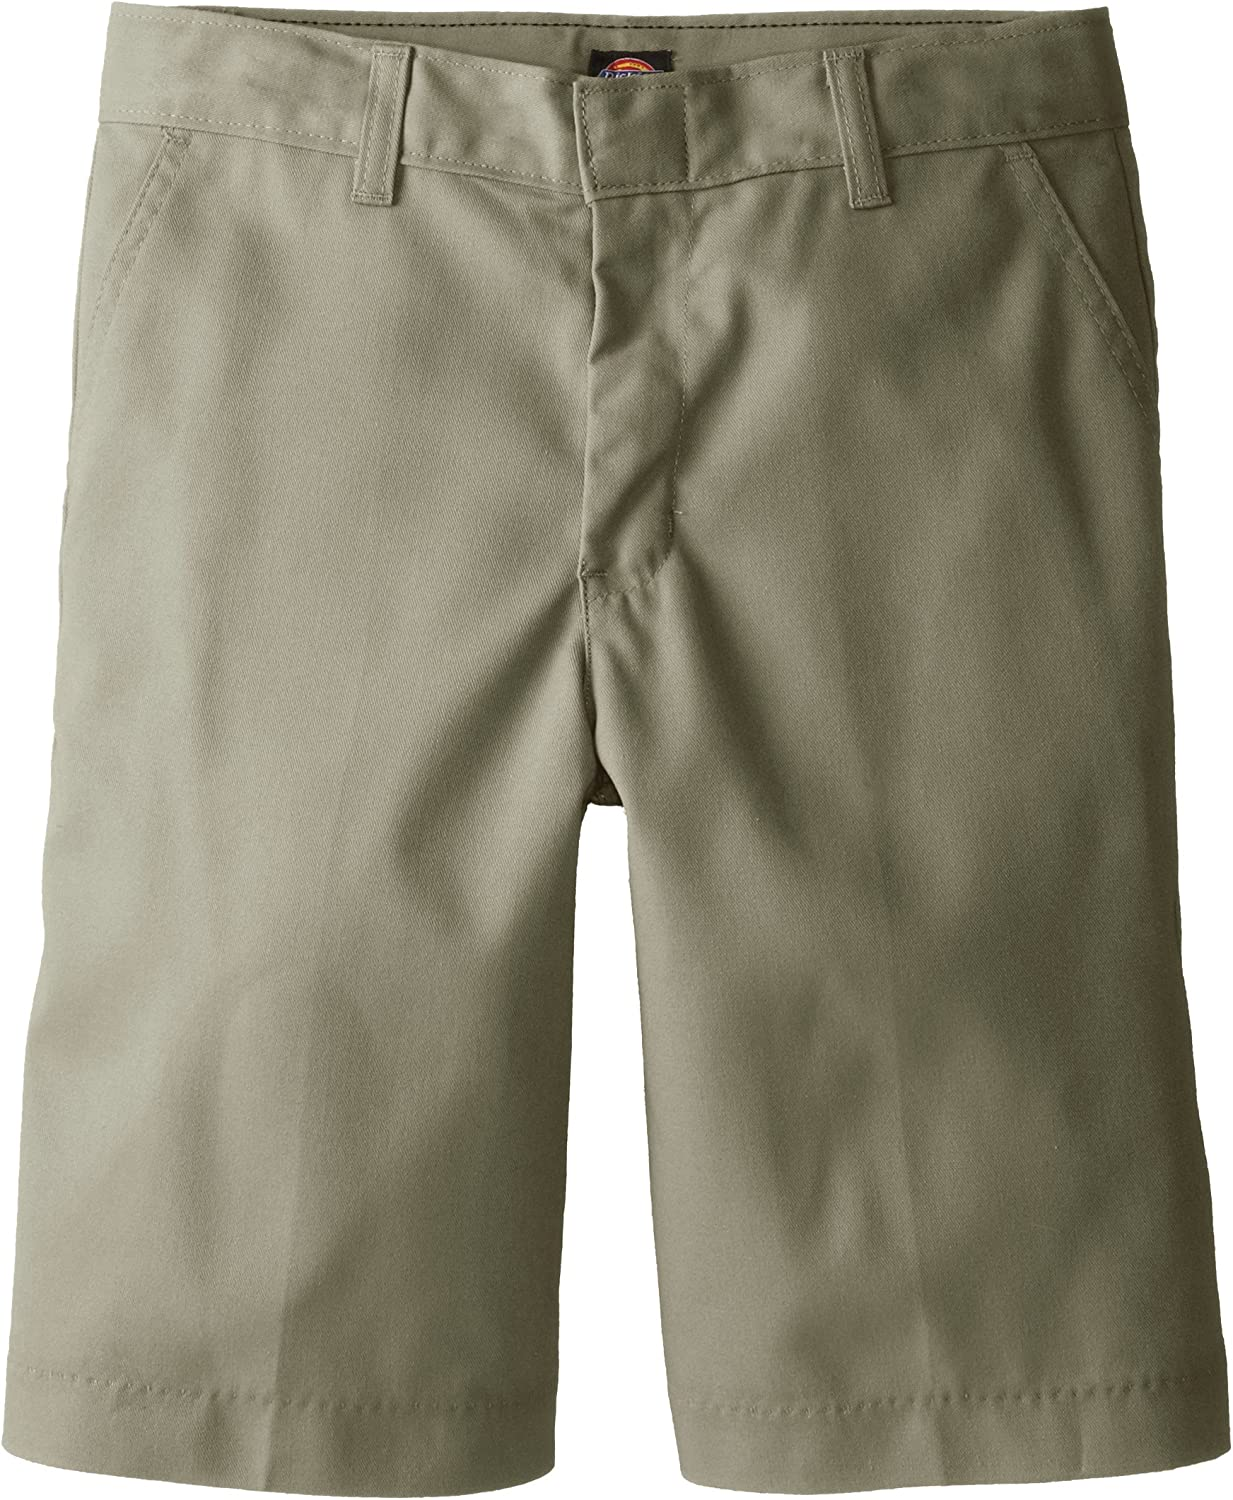 Dickies Boys Flex Waist School Uniform Short